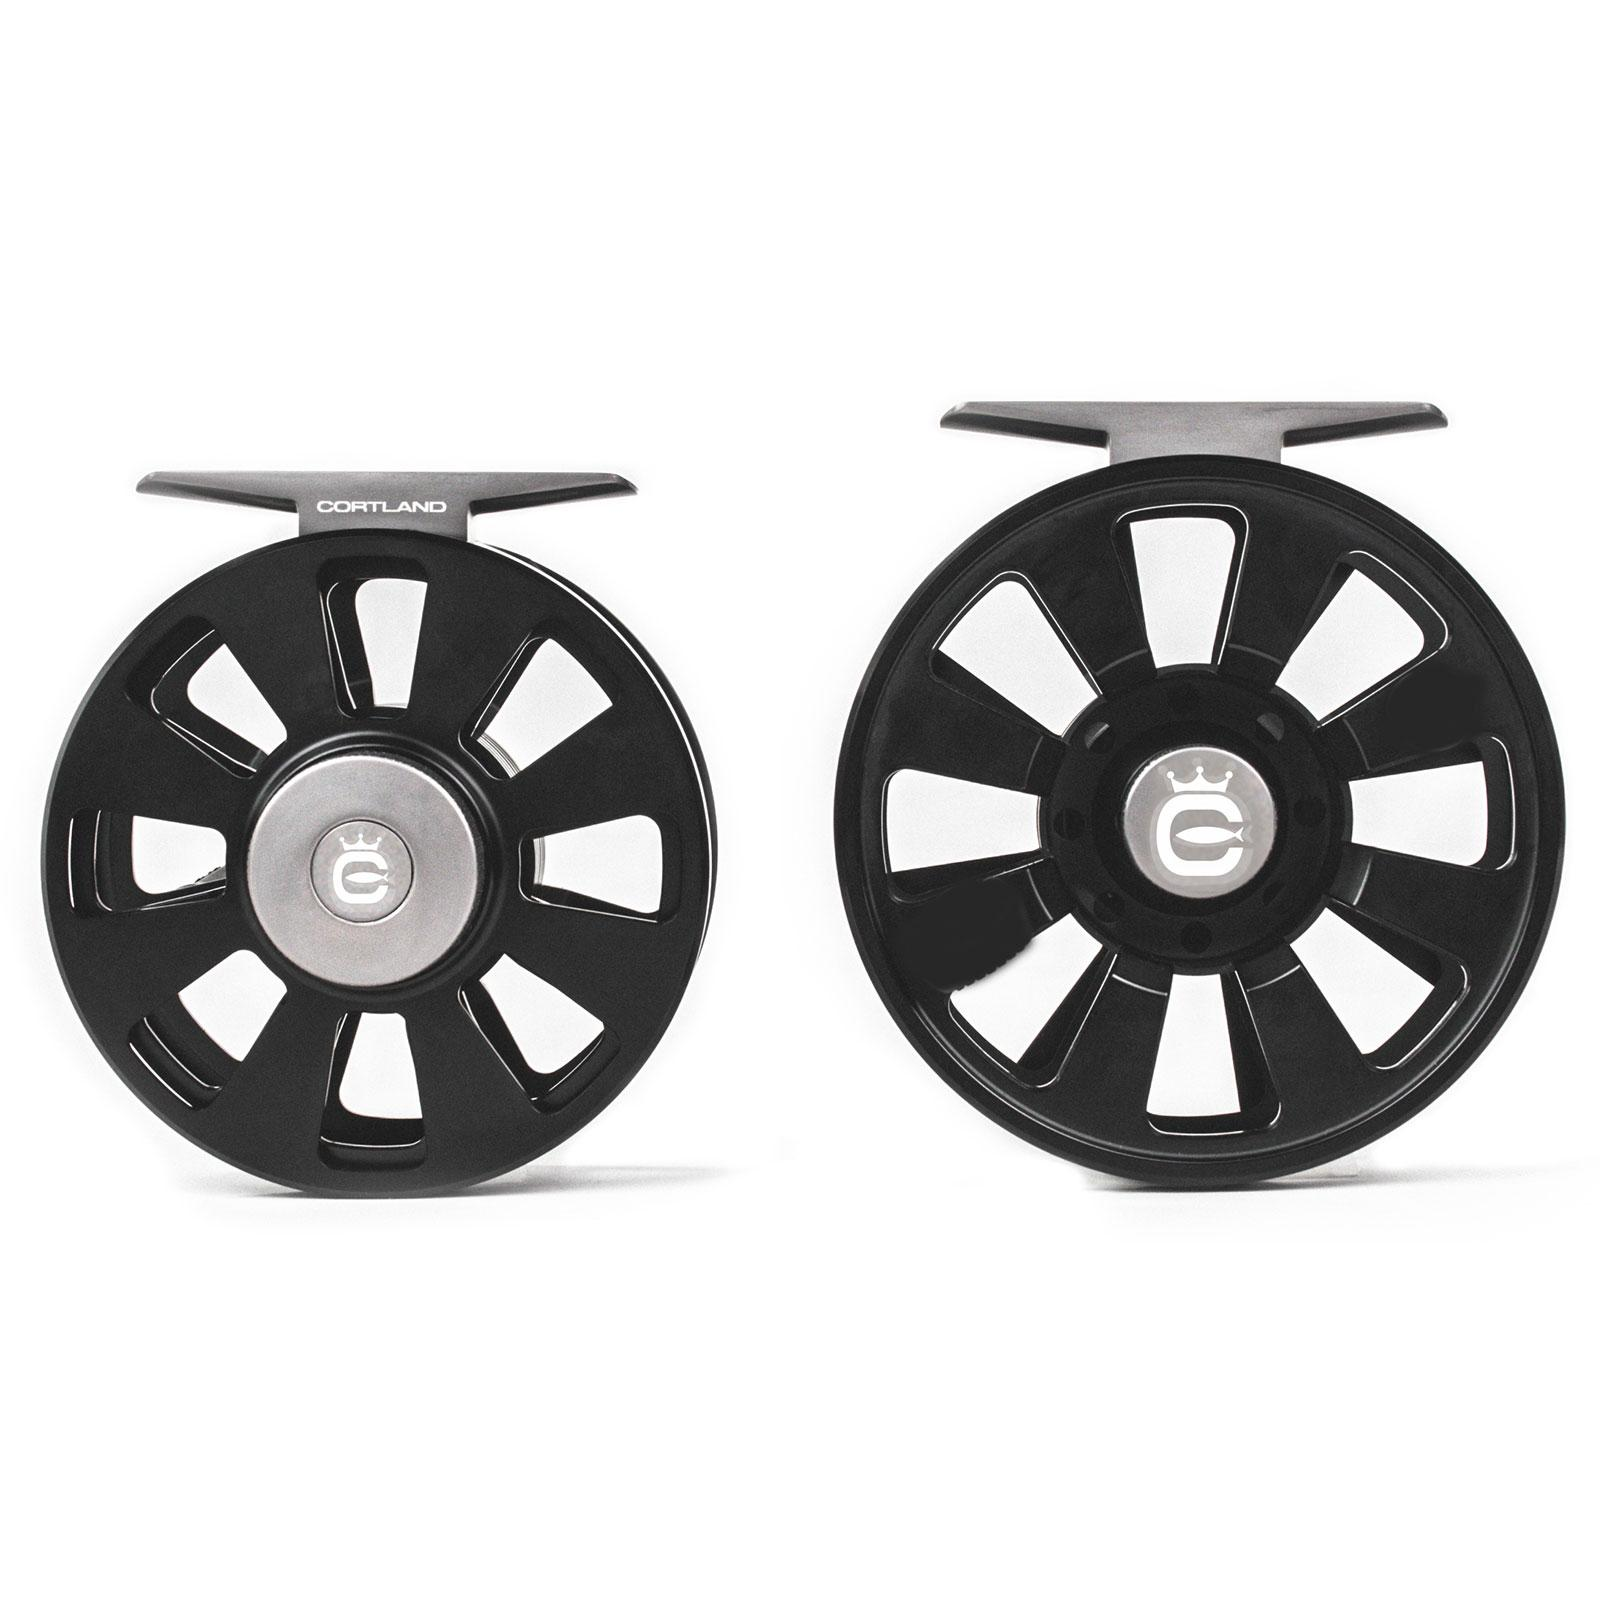 Cortland Crown Fly Reel Spare Spool